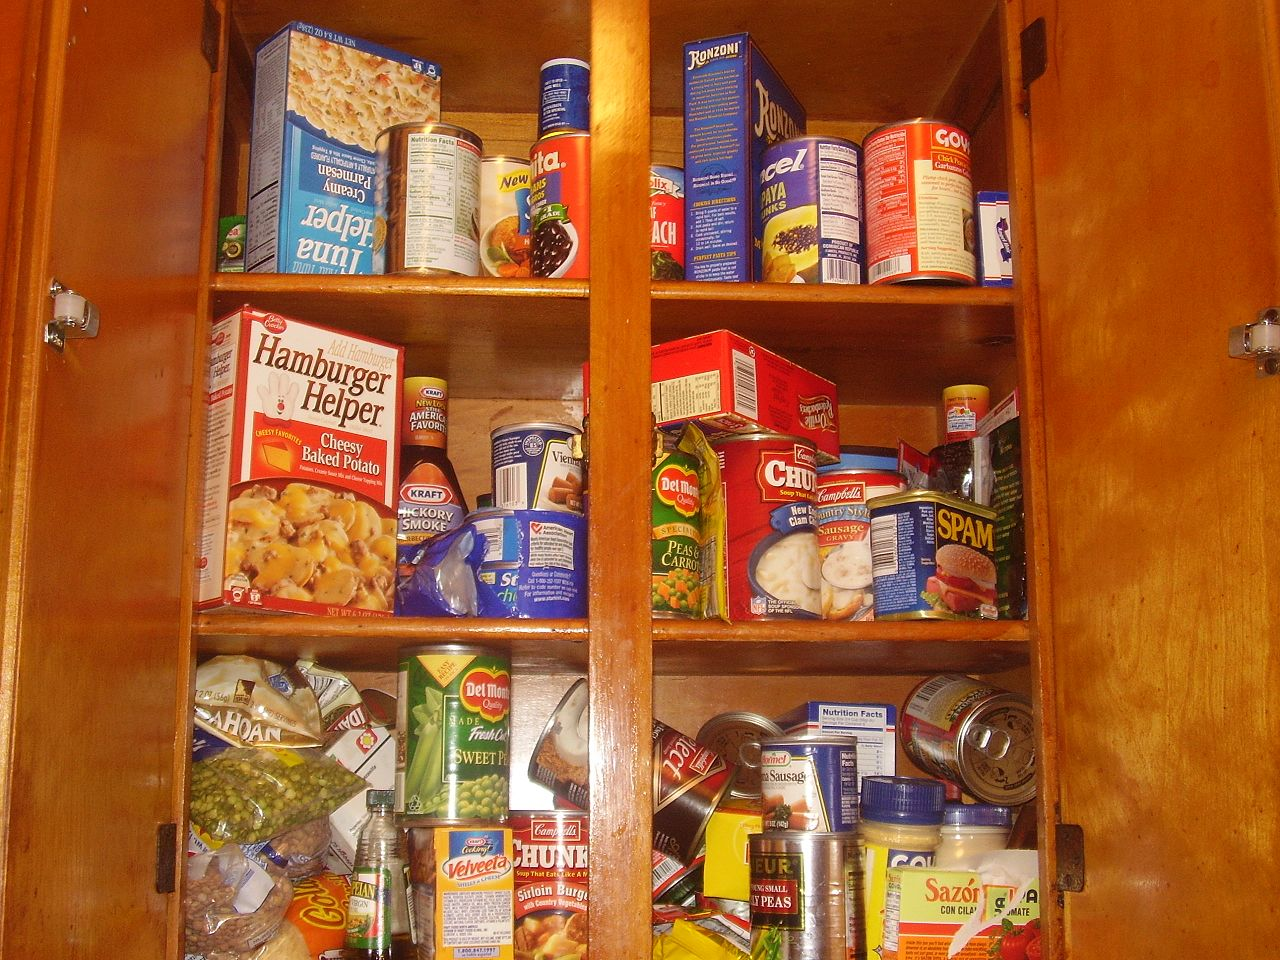 1280px-Food_on_shelf.jpg?profile=RESIZE_710x